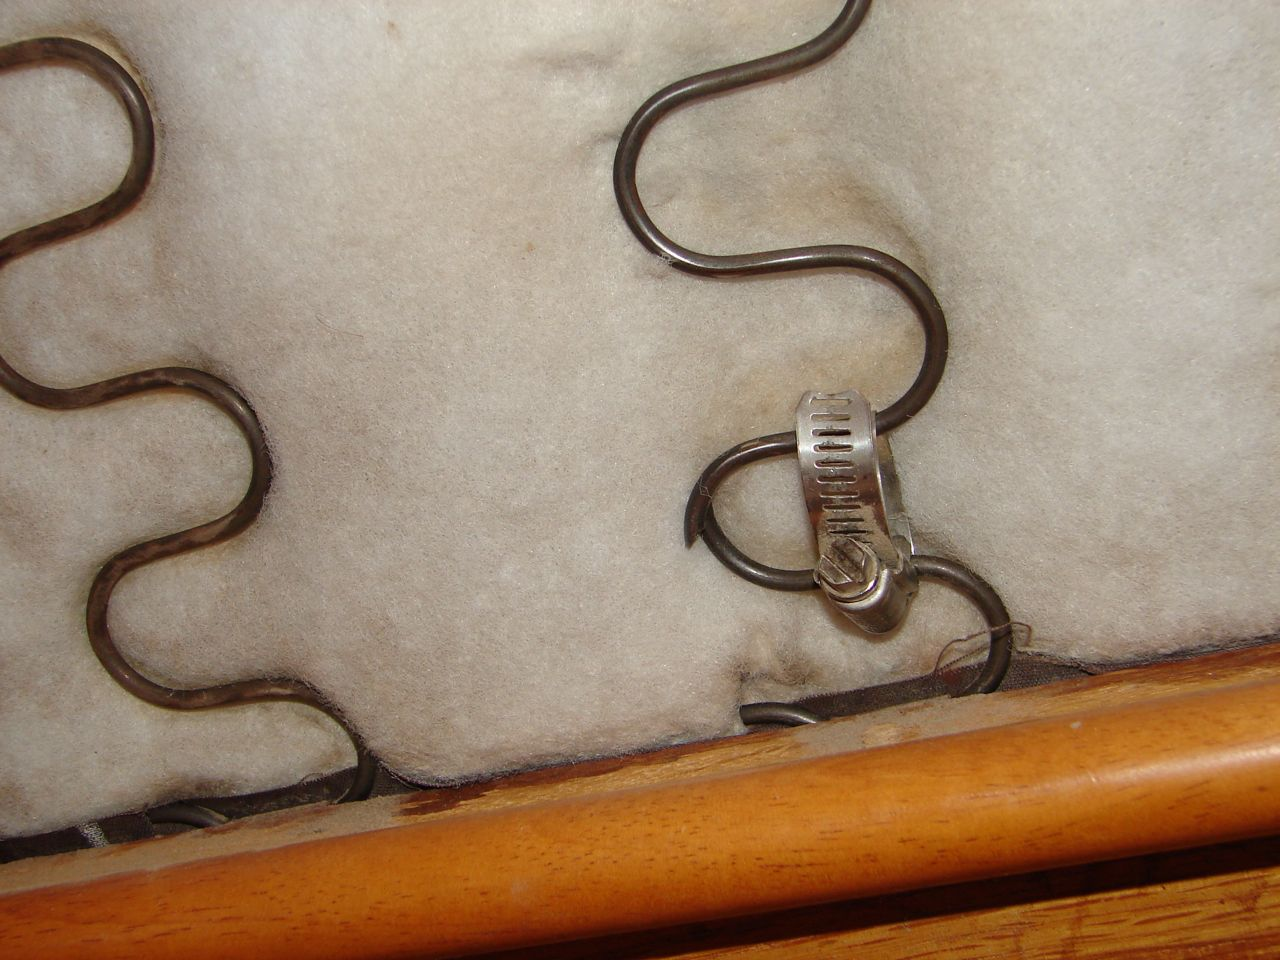 Recliner Chair Handle Broken Floor High Back Spring Pictures To Pin On Pinterest